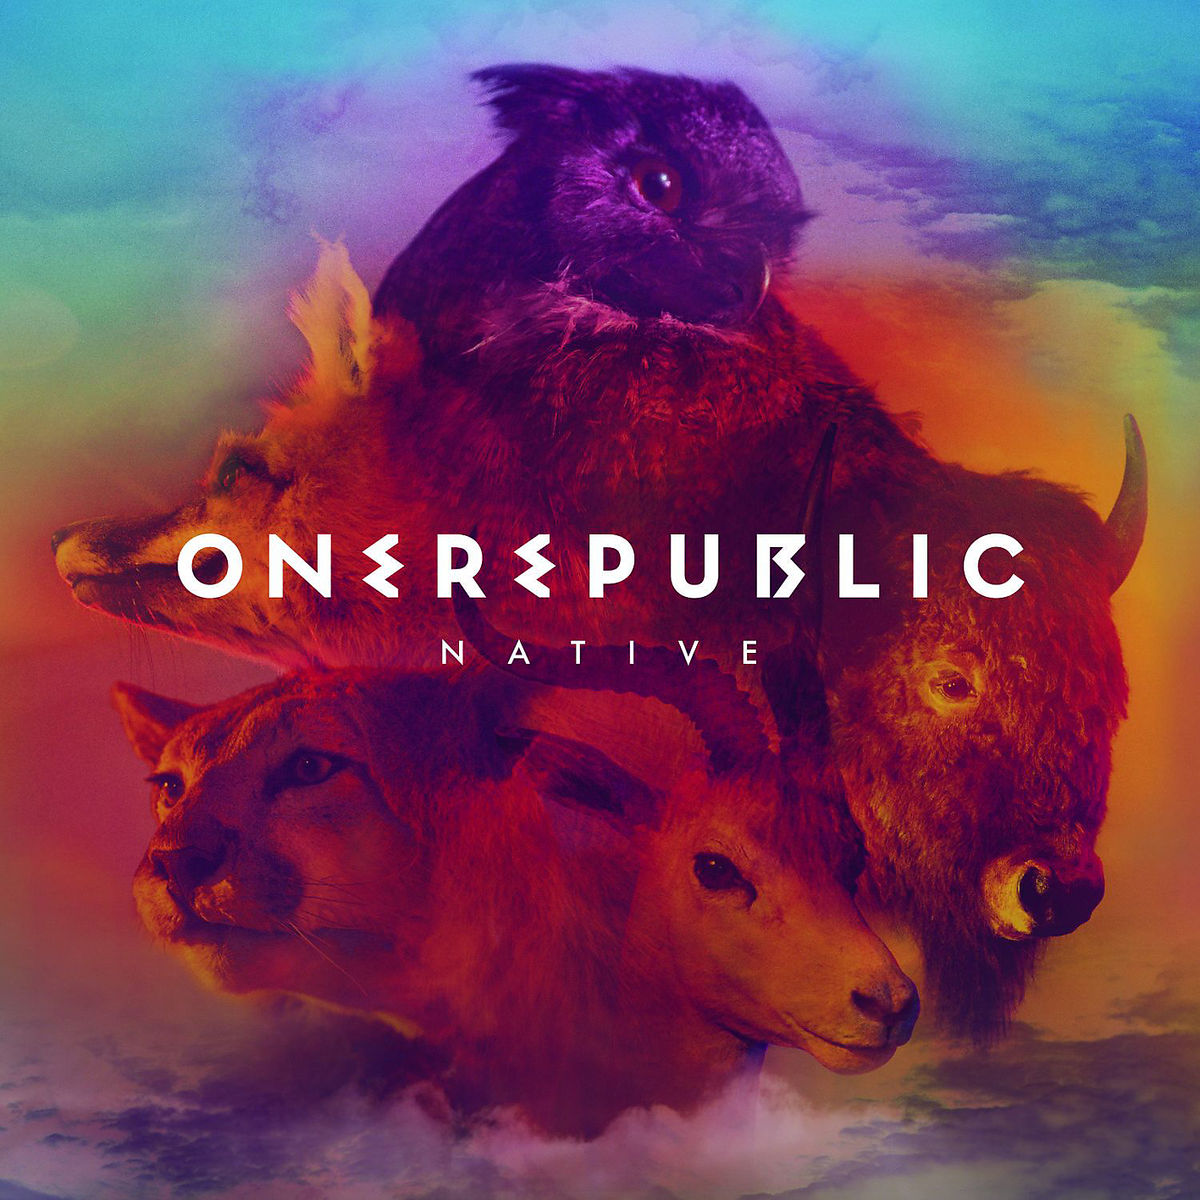 Onerepublic's native delivers happiness | the echo.